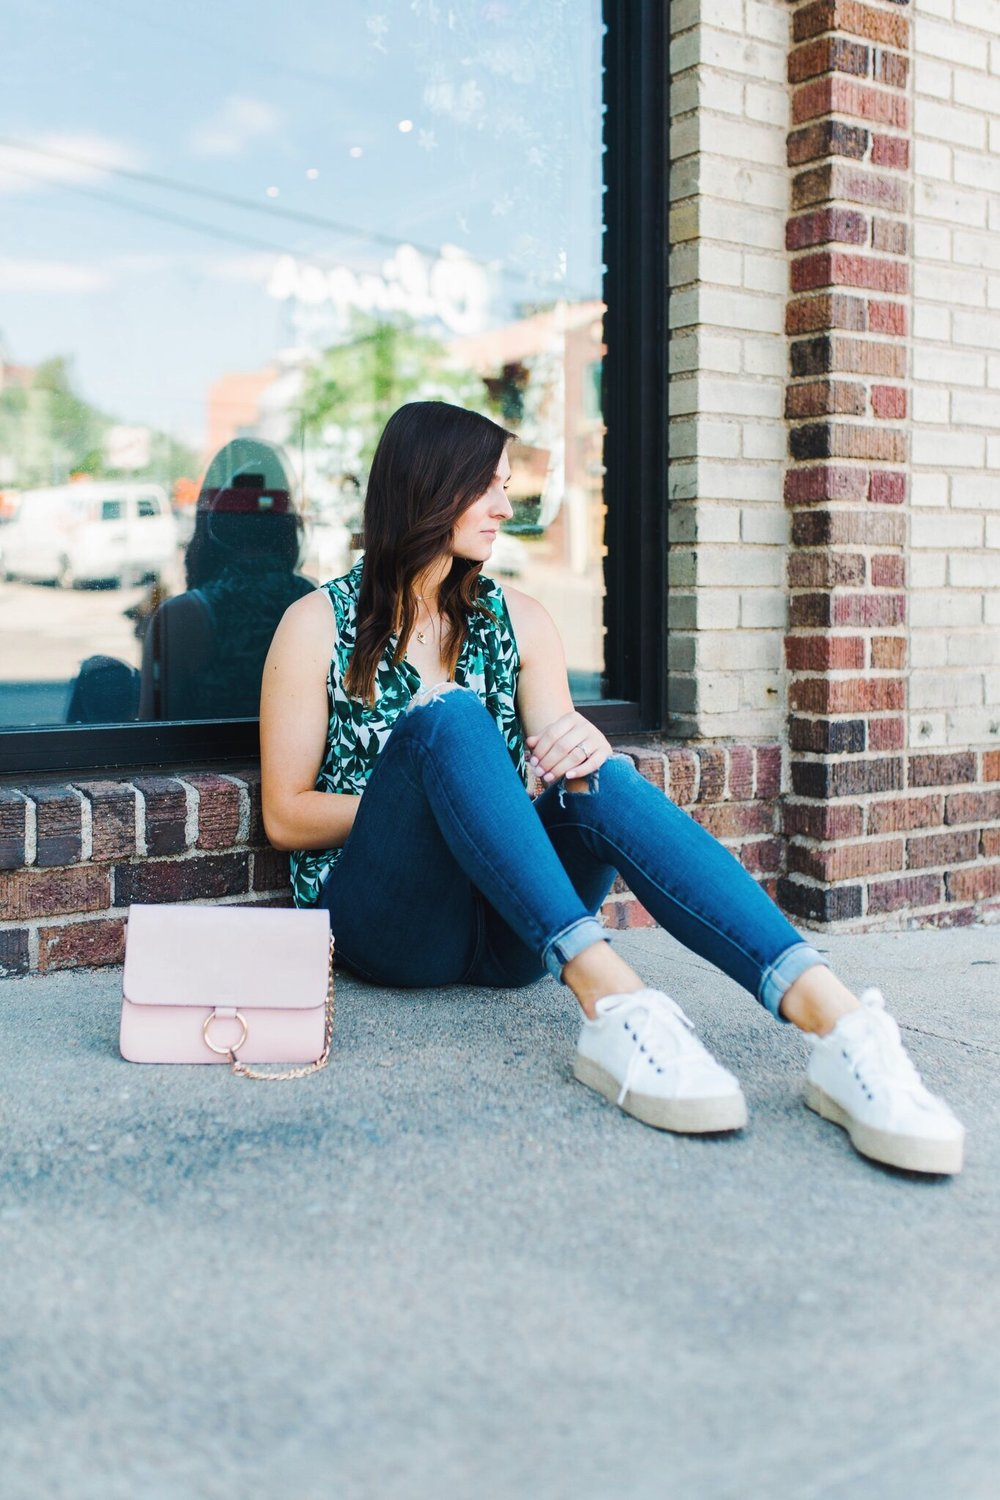 "<img src= five-summer-pieces-to-have-in-your-closet.jpg"" alt= ""denver-fashion-blogger-sitting-in-front-of-a-store-wearing-summer-essential-pieces-to-have-in-your-closet-bold-patterned-tank-top-blouse-white-espadrille-platform-sneakers-ag-adriano-goldschmied-11-year-swapmeet-distressed-skinny-jeans-light-pink-chloe-faye-dupe-bag"">"